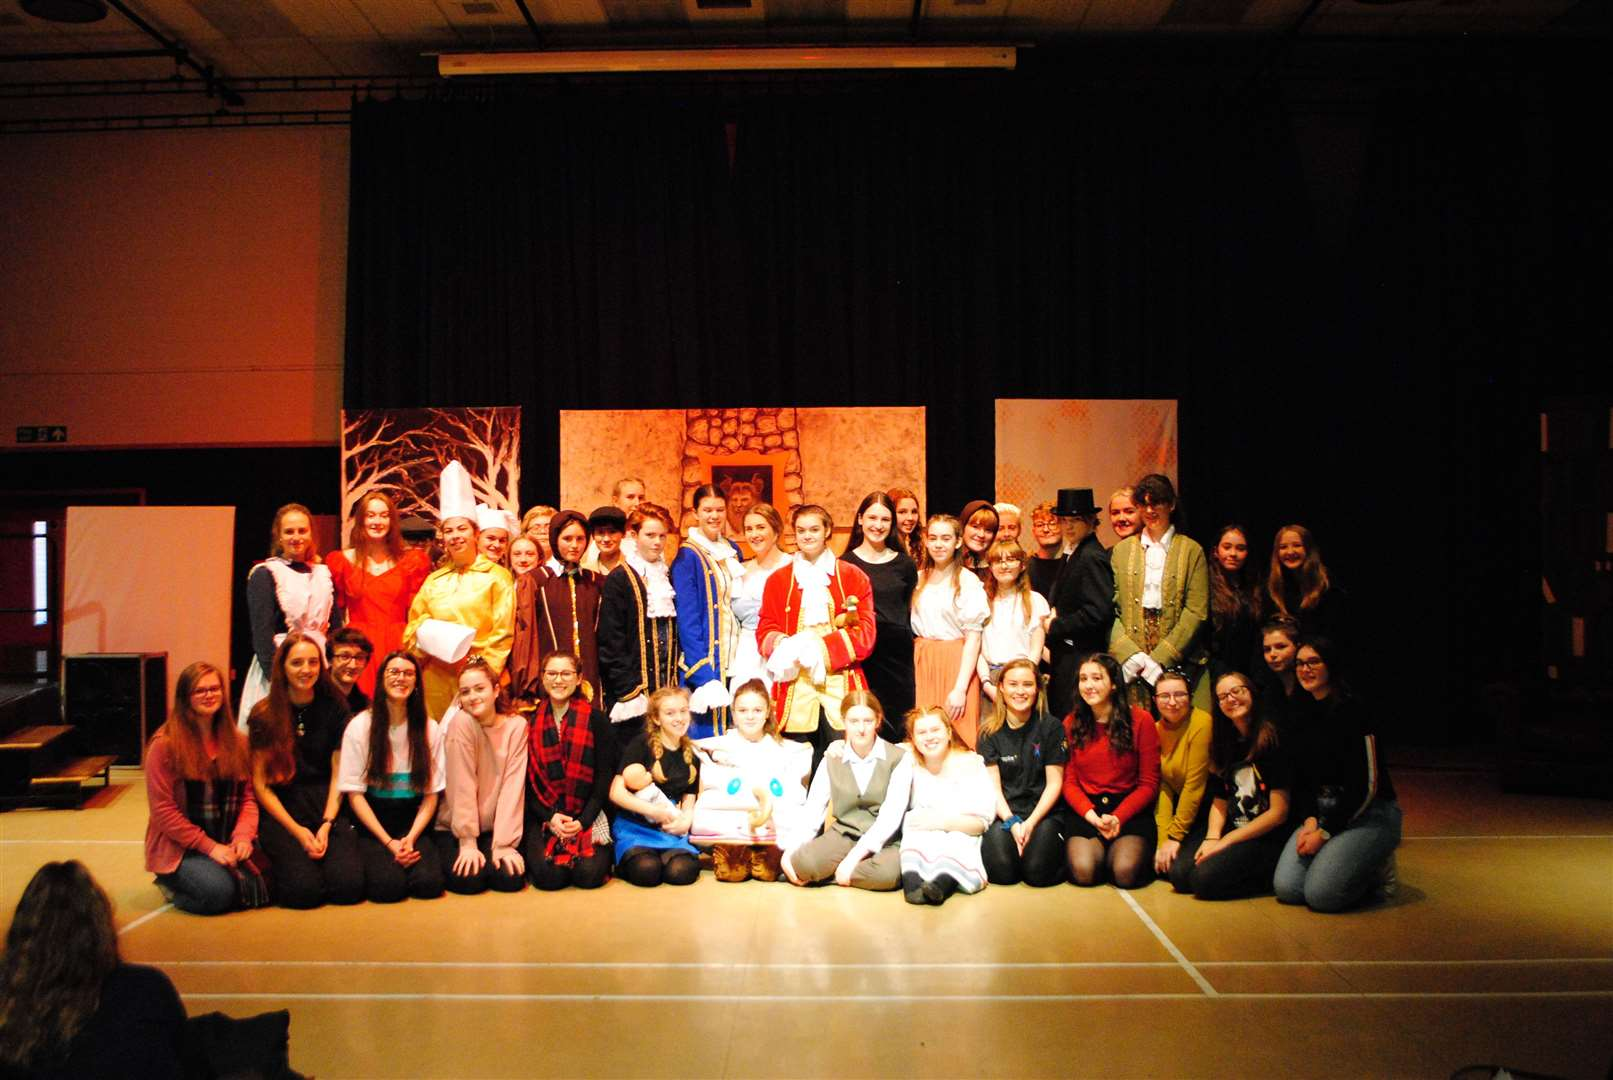 Pupils at KGGS performed Beauty and the Beast. (21719453)